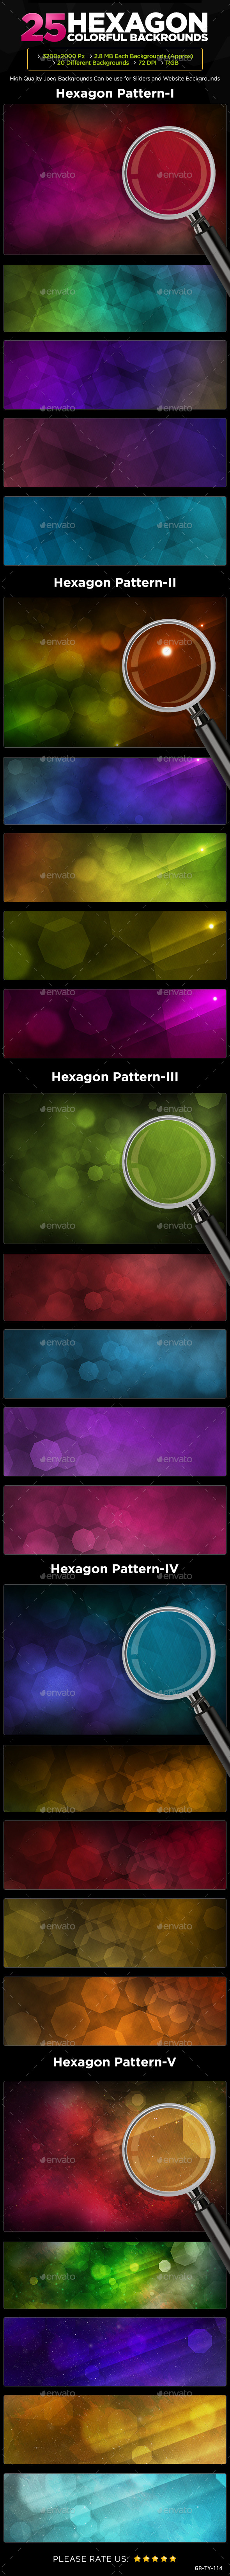 GraphicRiver 25 Hexagon Backgrounds 8997433